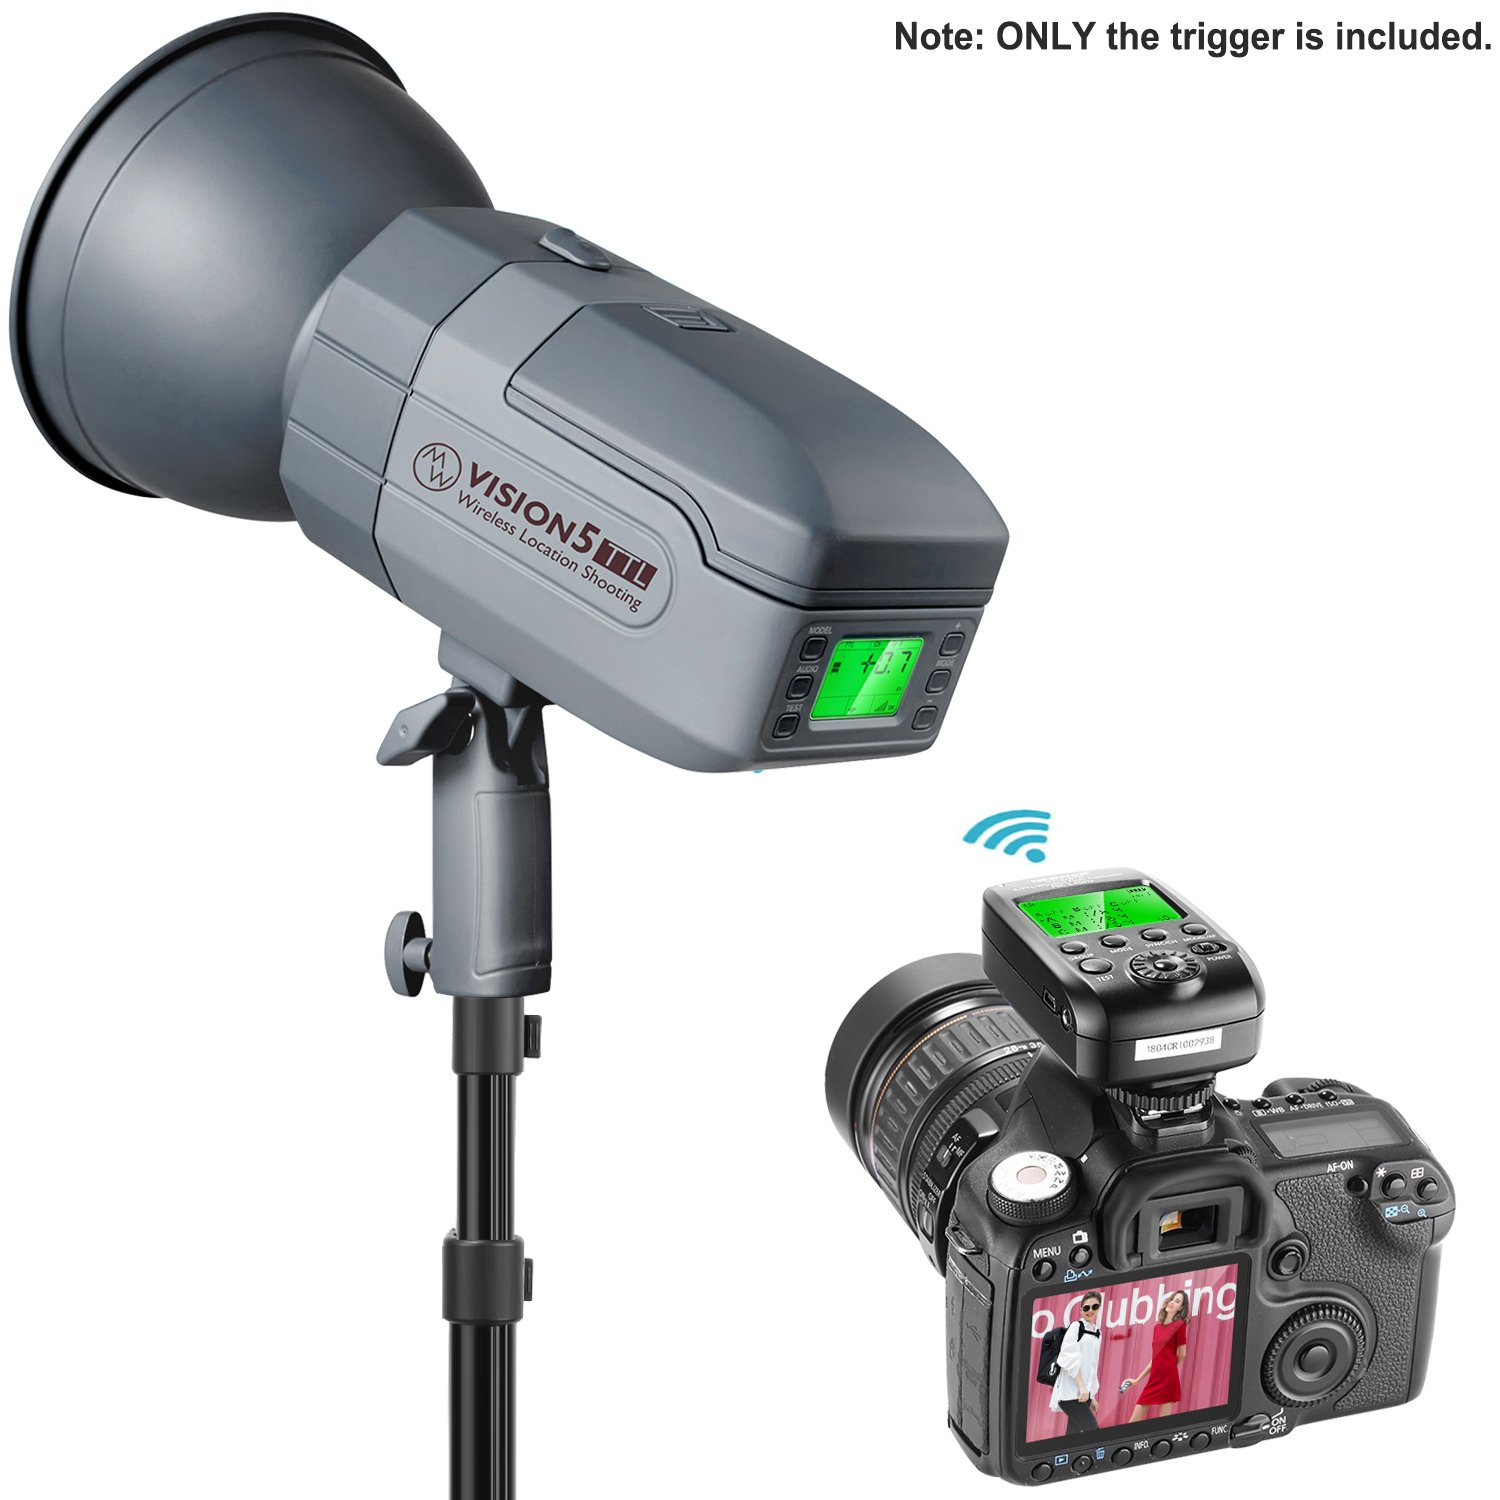 Neewer VC-818TX 2.4G Wireless Flash Trigger Transmitter Compatible with Nikon Camera and Vision 5 Outdoor Studio Flash Strobe Monolight